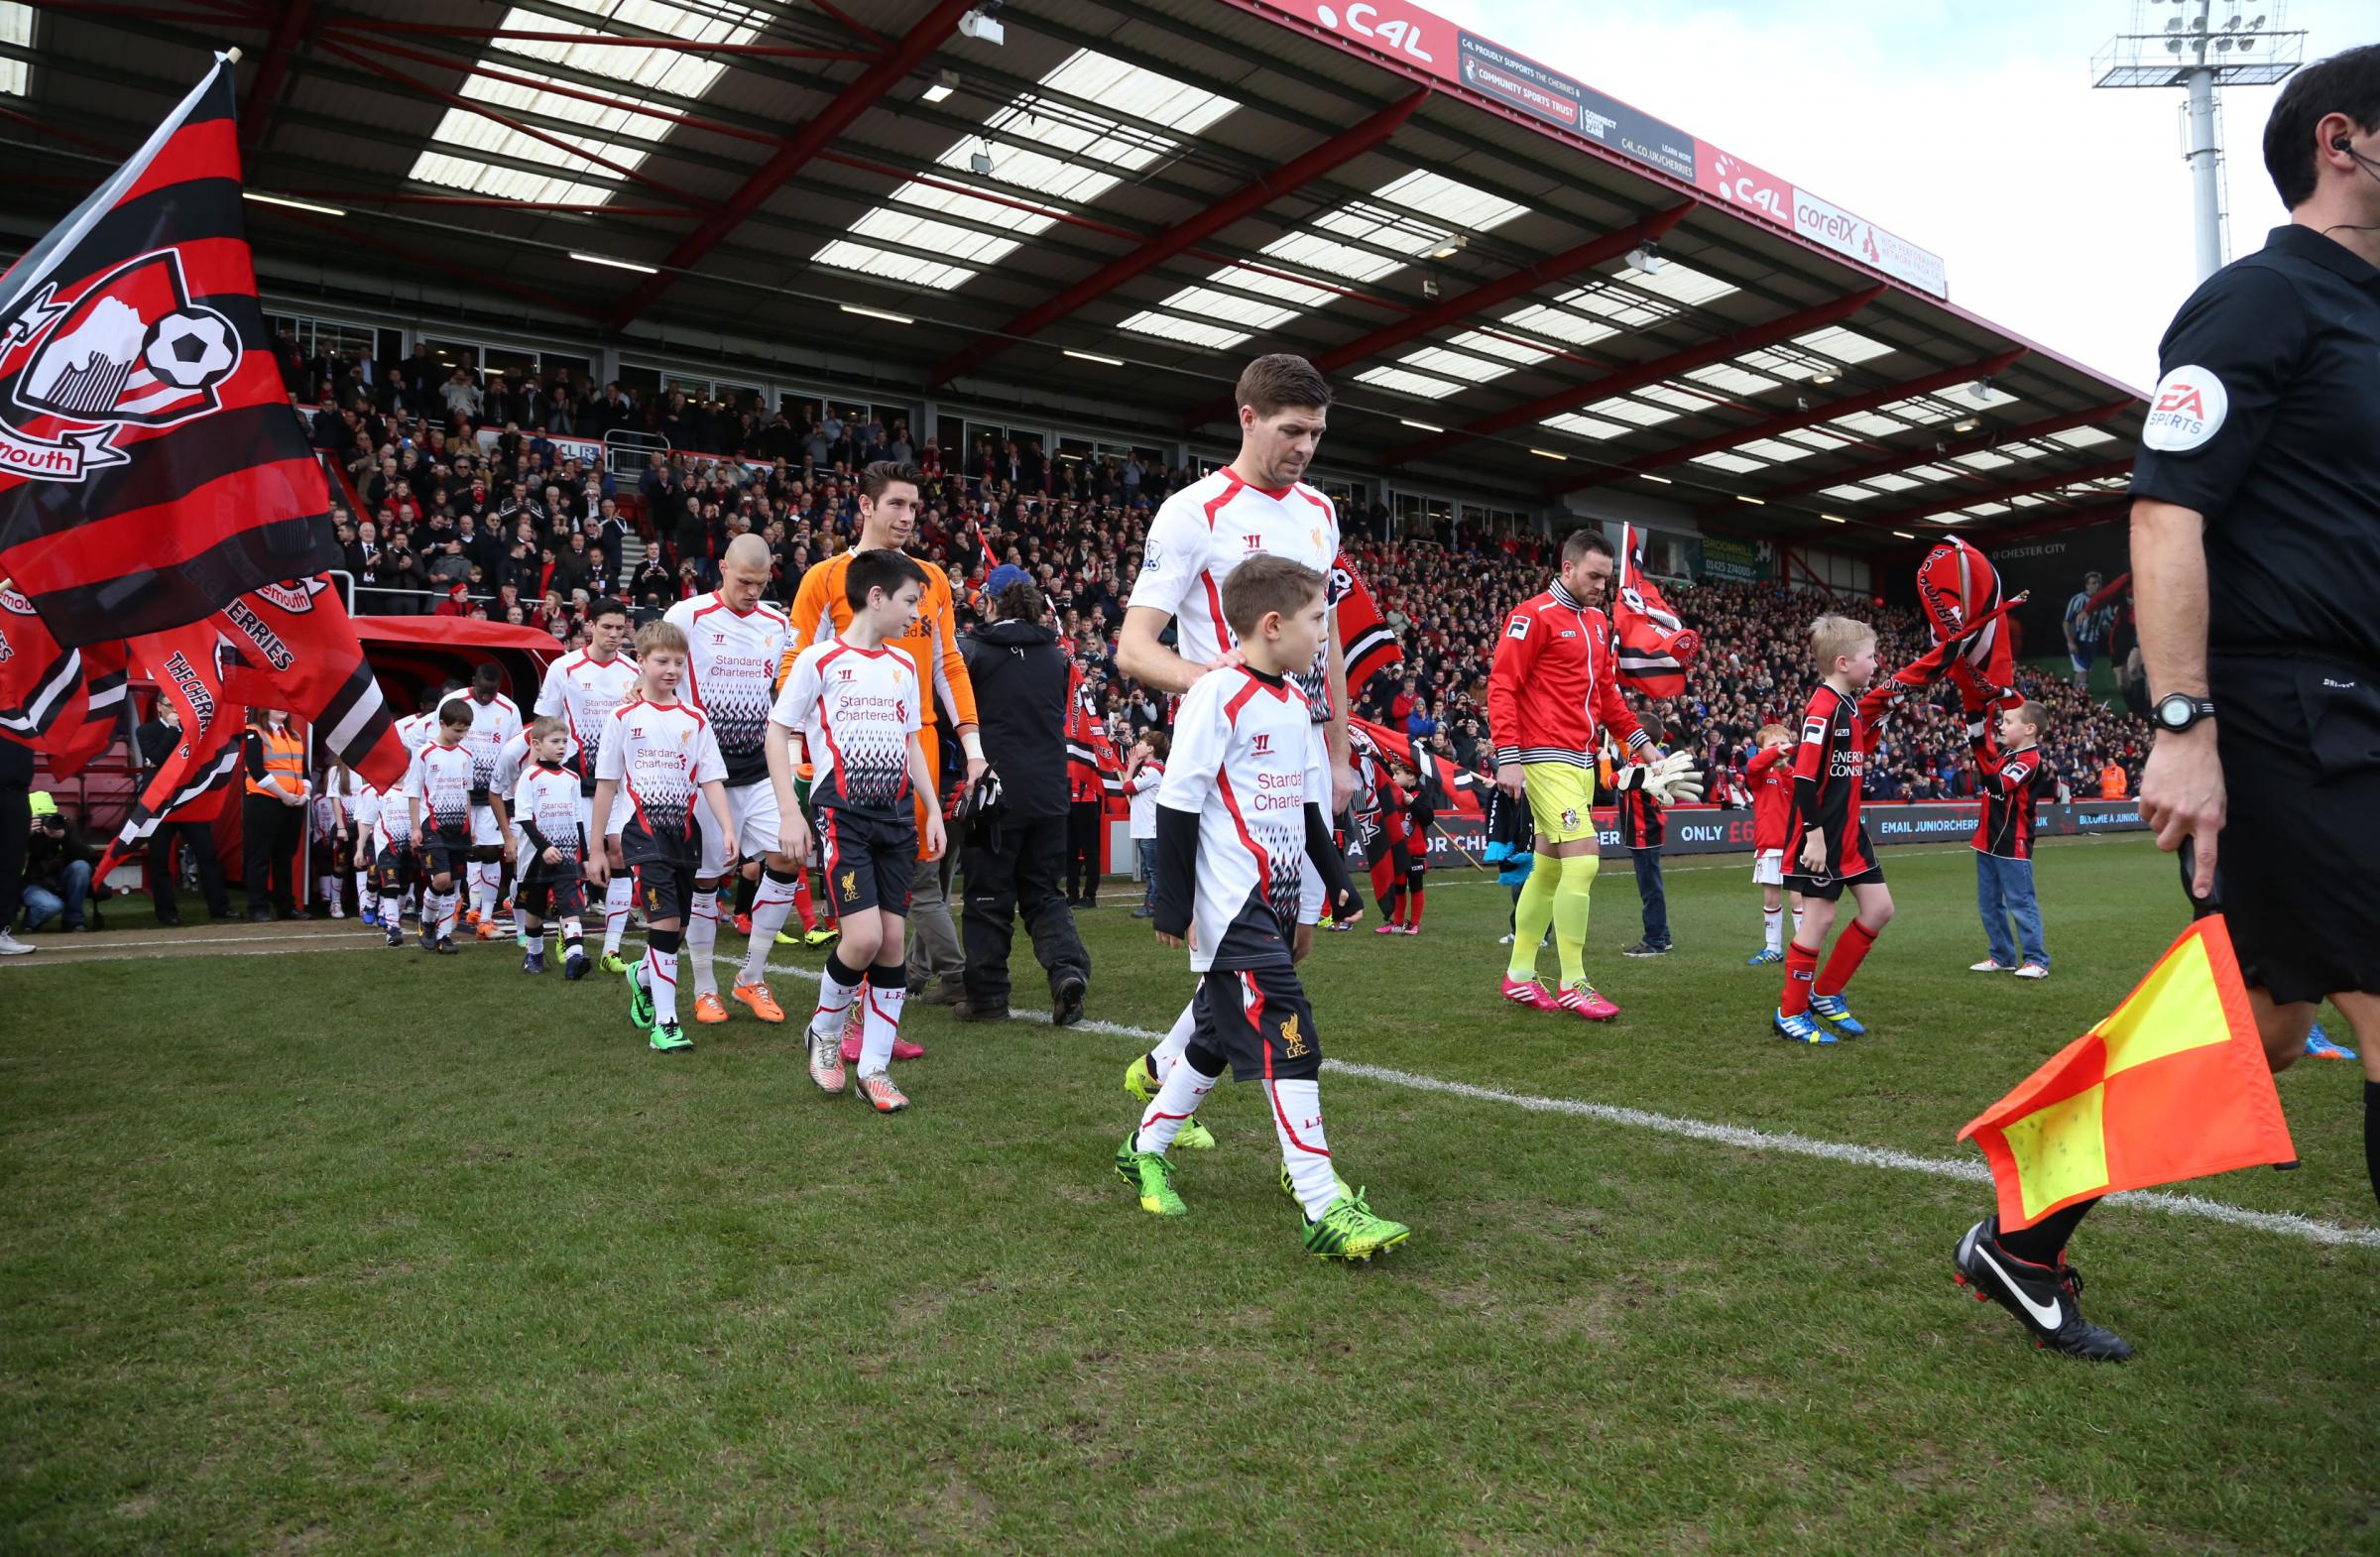 Bournemouth Echo Afc Bournemouth V Liverpool In The Fourth Round Of The Fa Cup On